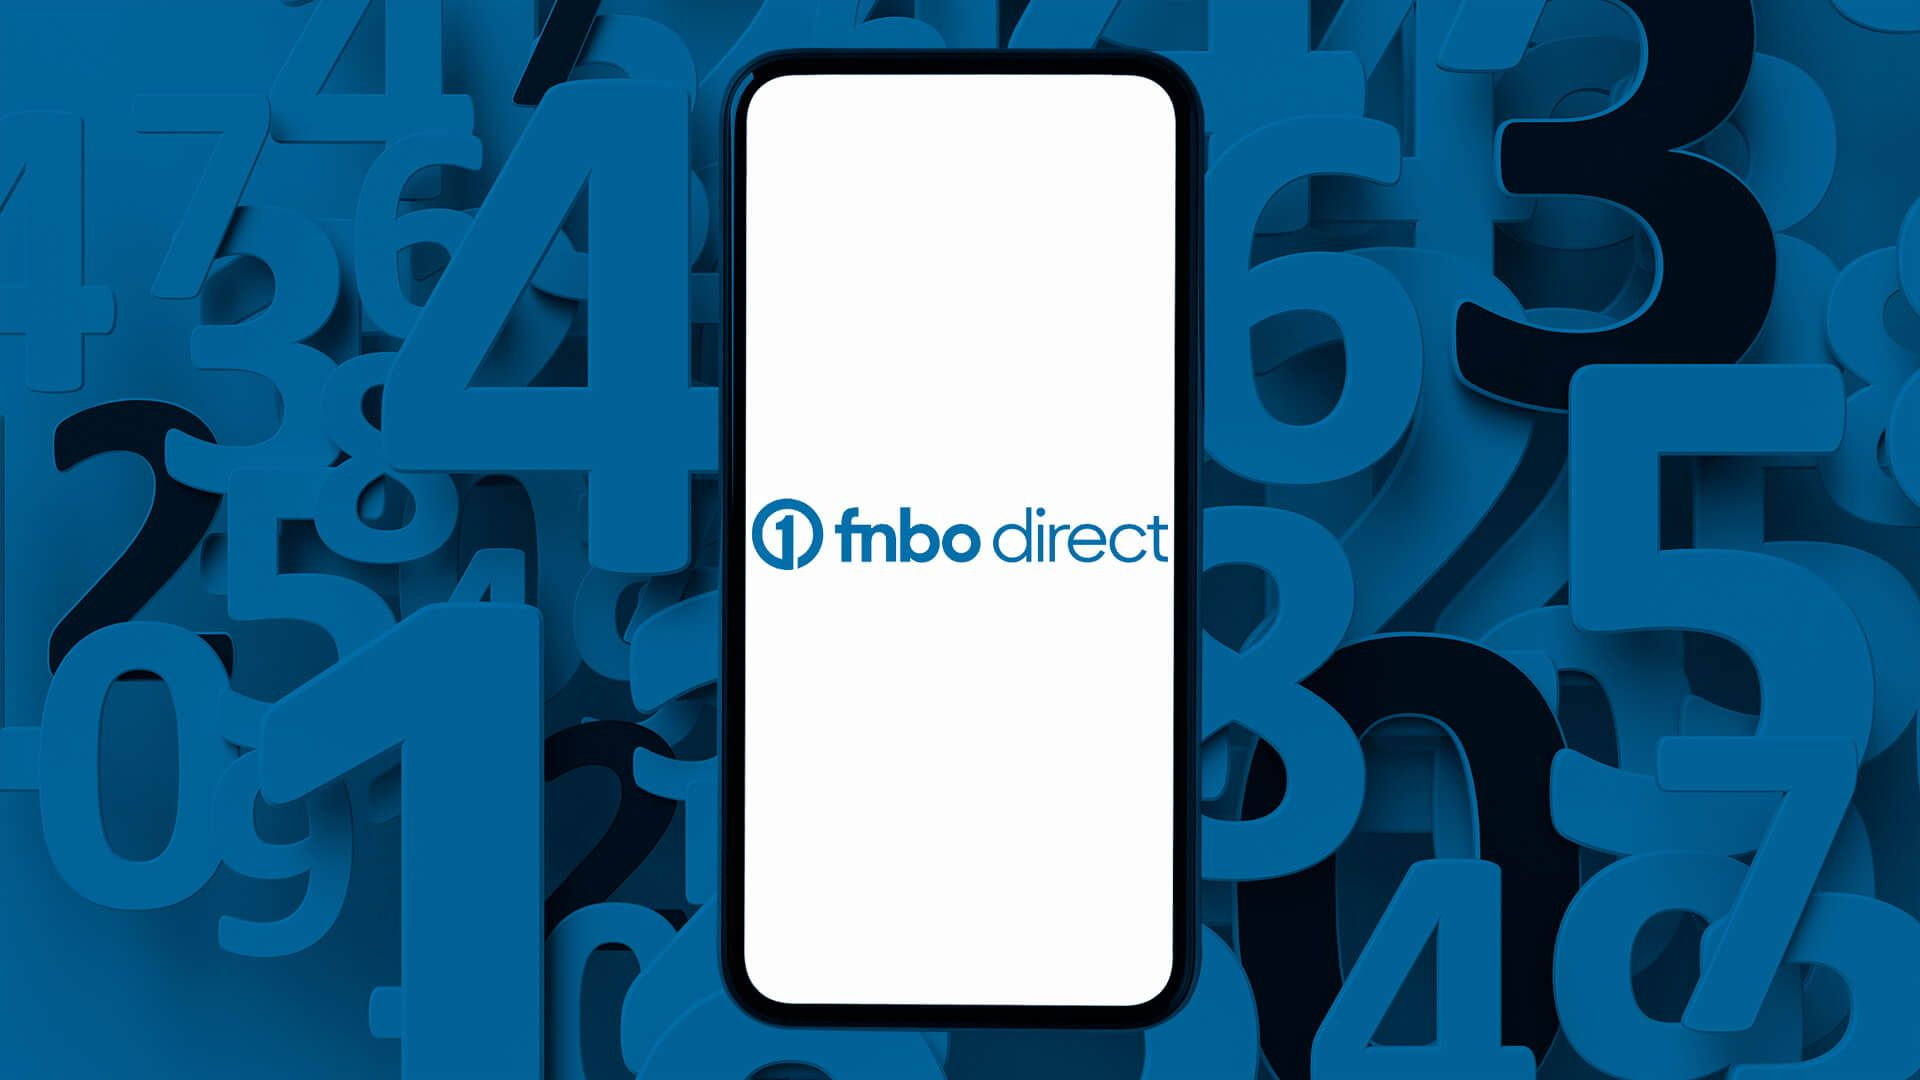 FNBO Direct routing number